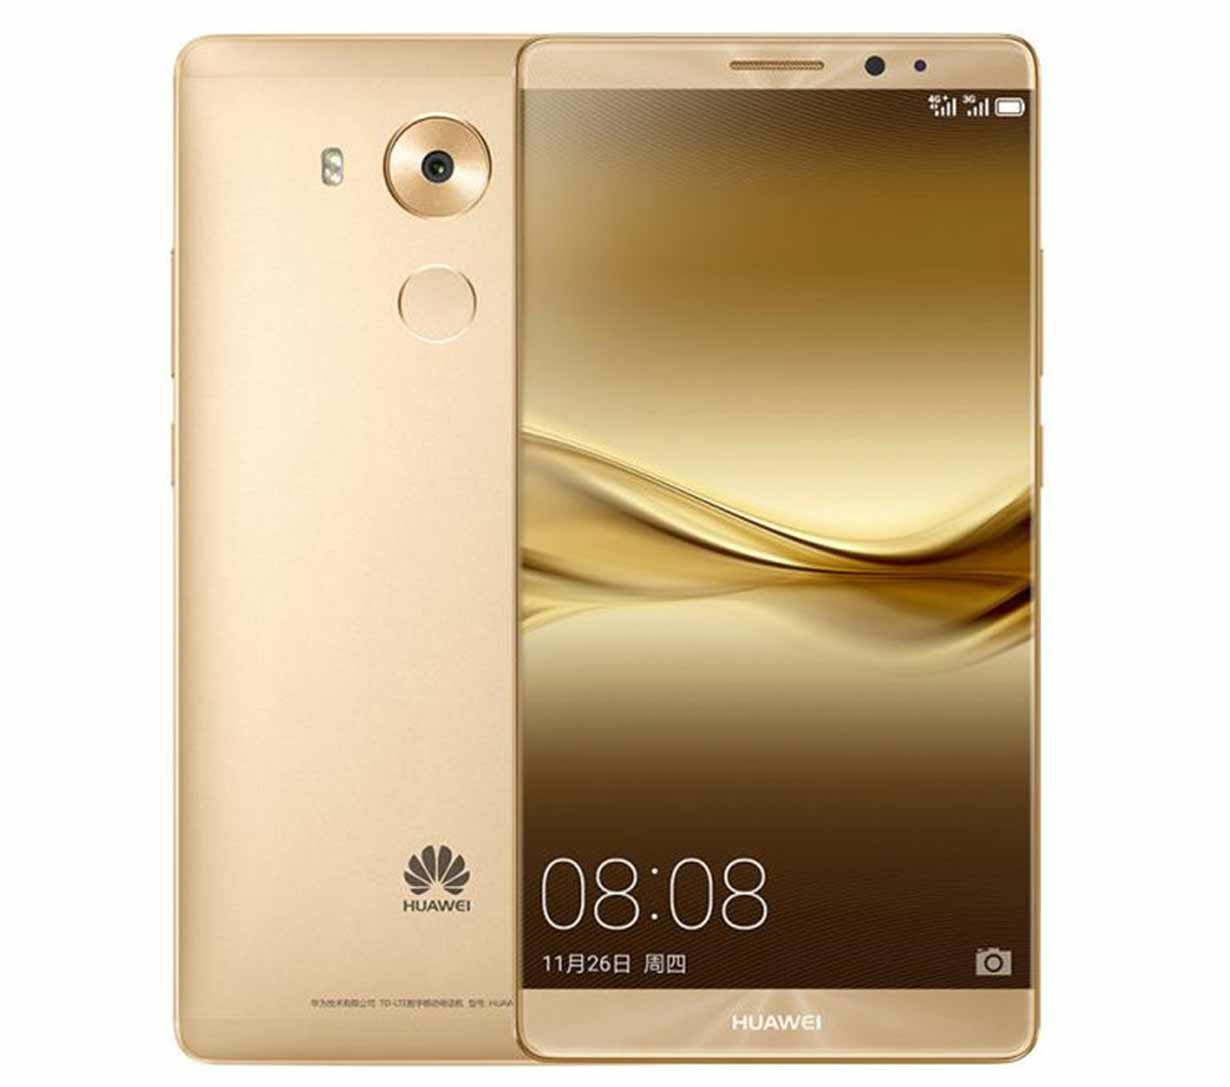 Huawei Mate 8 Price Review Specifications, pros cons